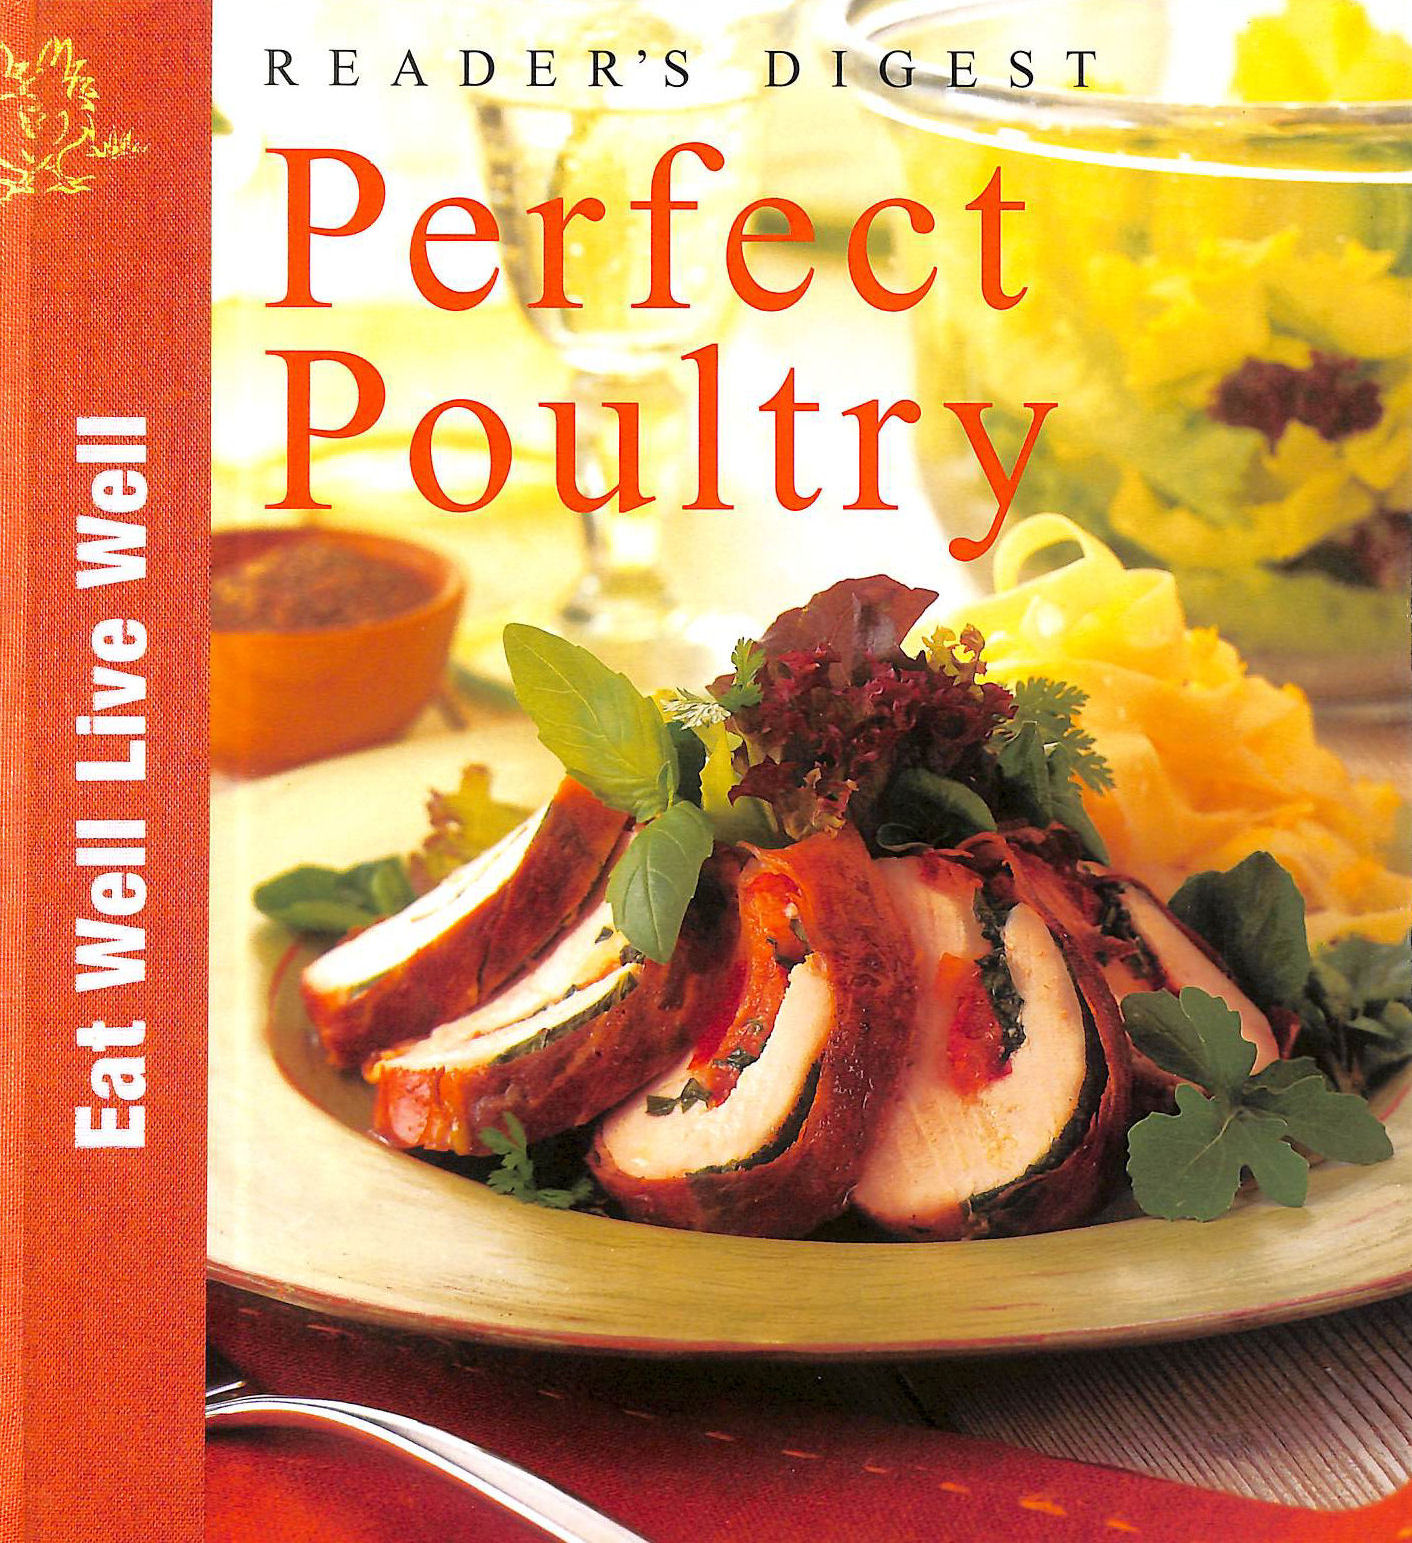 Image for Reader's Digest Perfect Poultry (Eat Well, Live Well)